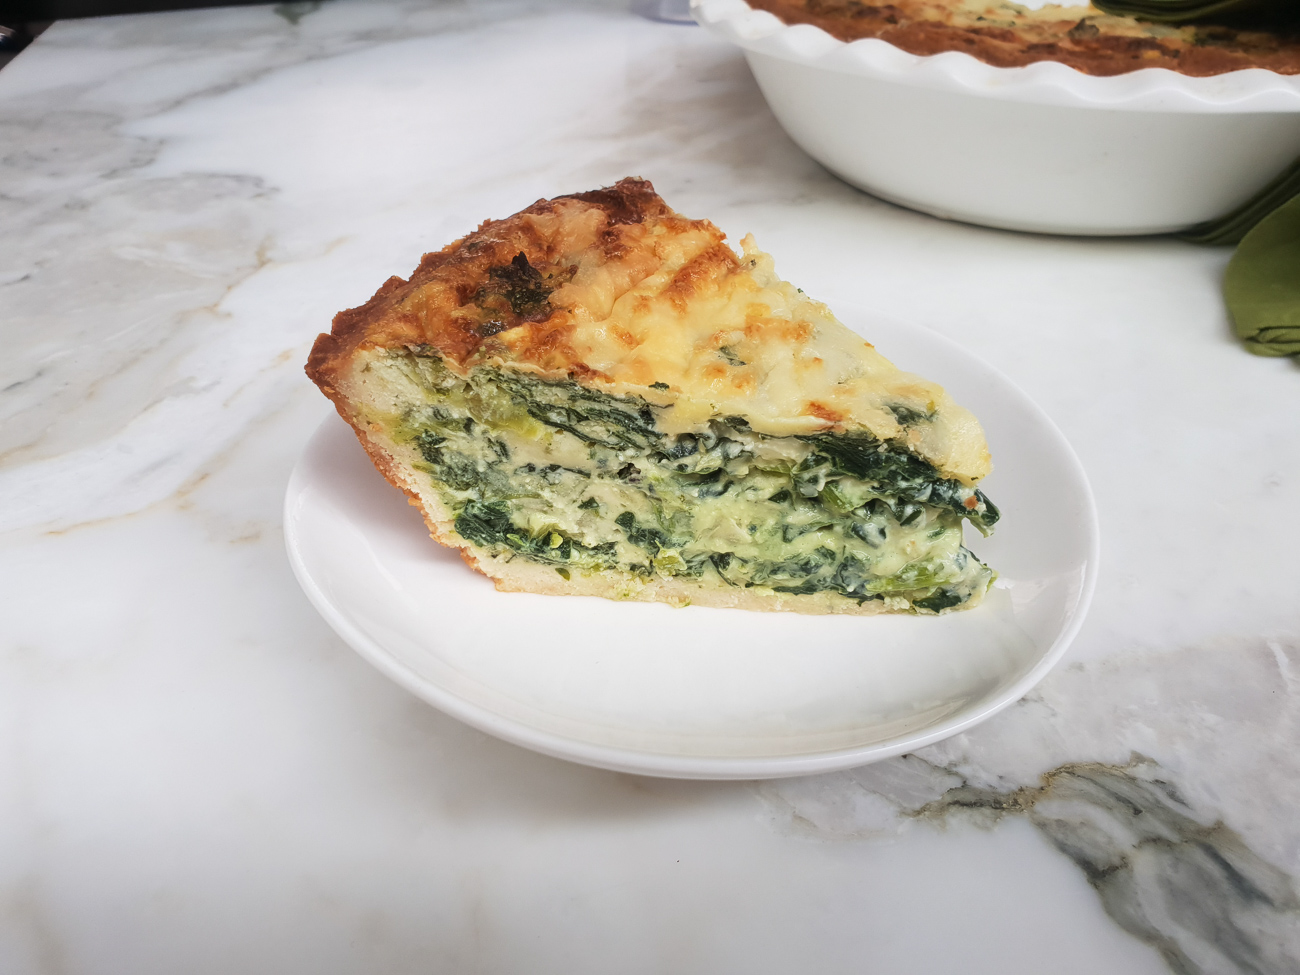 Crustless Spinach and Ricotta Quiche